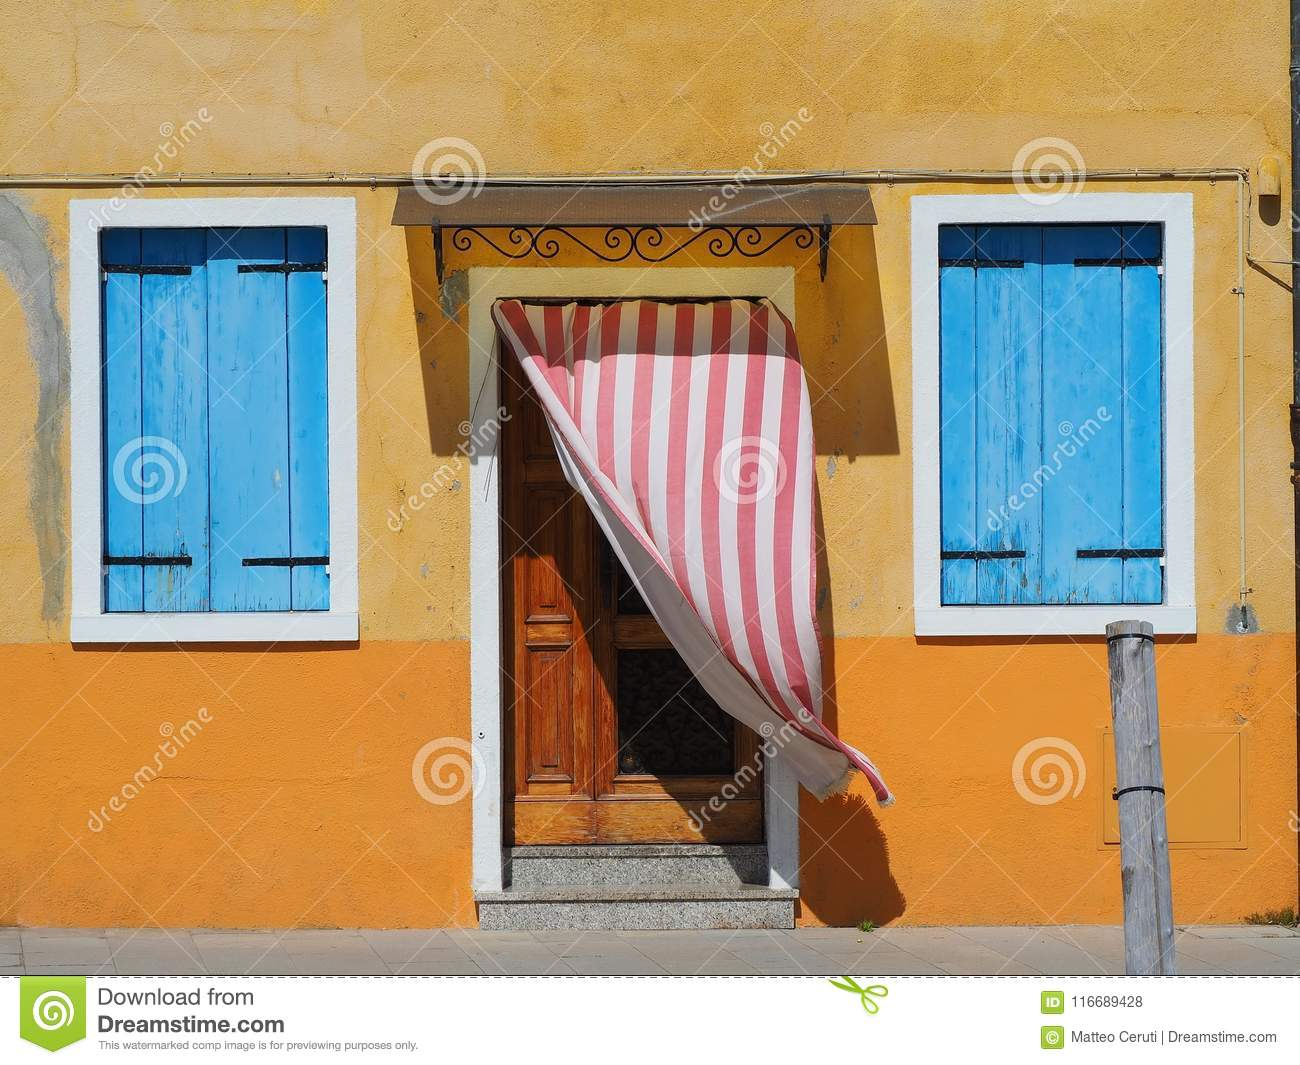 Burano, Venezia, Italy. Details of the windows and doors of the colorful houses in Burano island